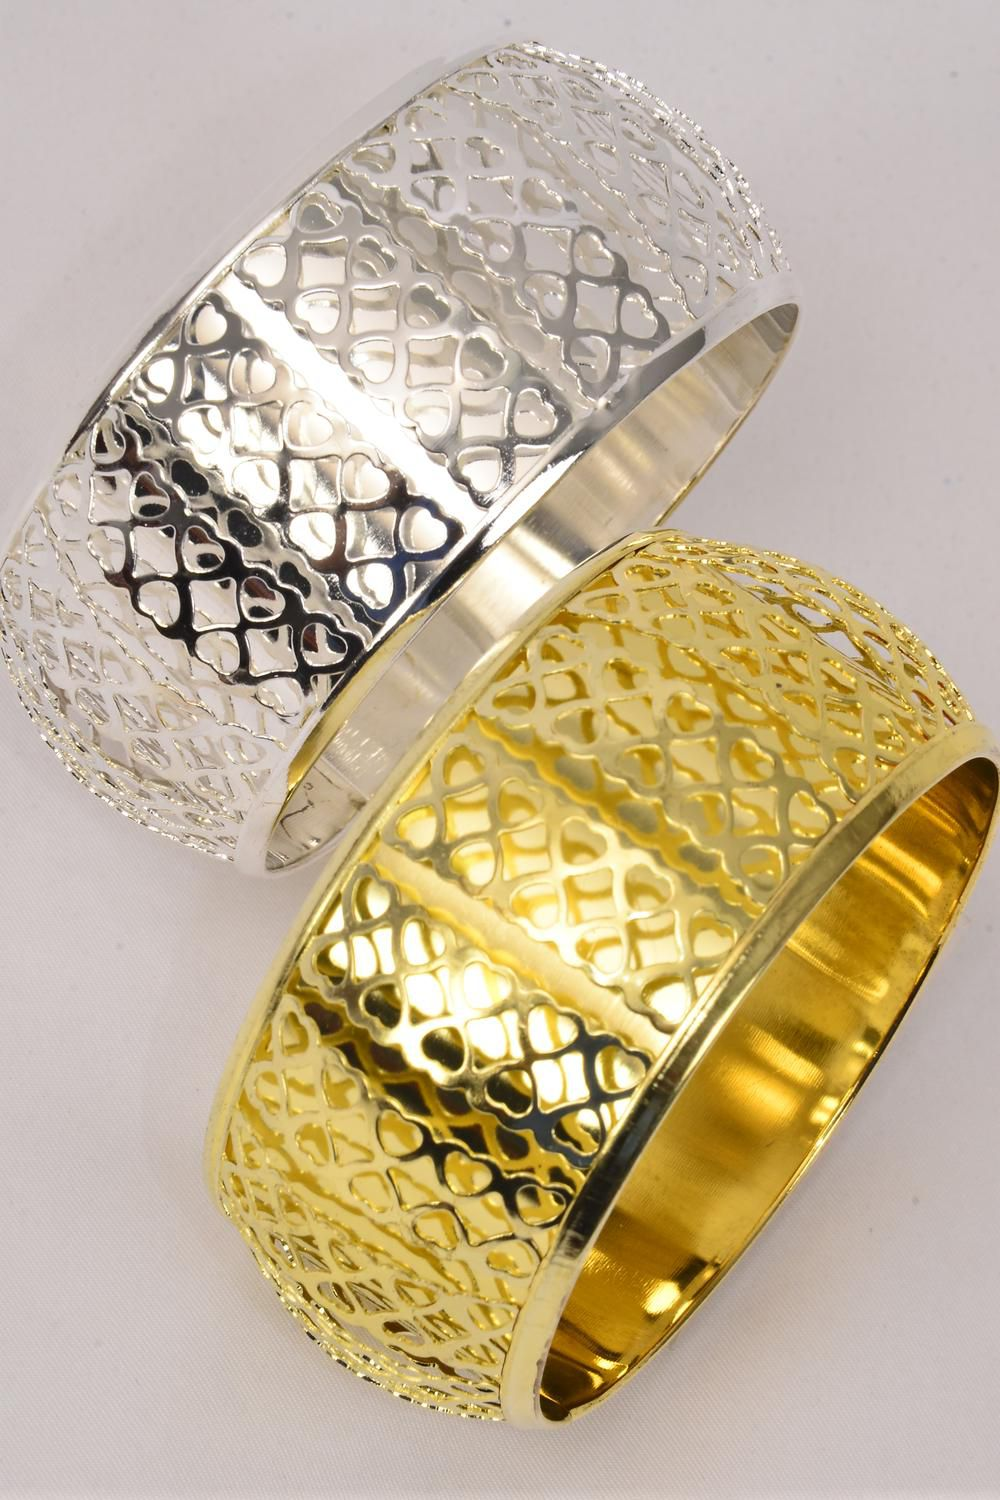 Wholesale Western Jewelry Supplies Bangle Metal Heart Patterns Gold Silver Mix Dz Size 2 75